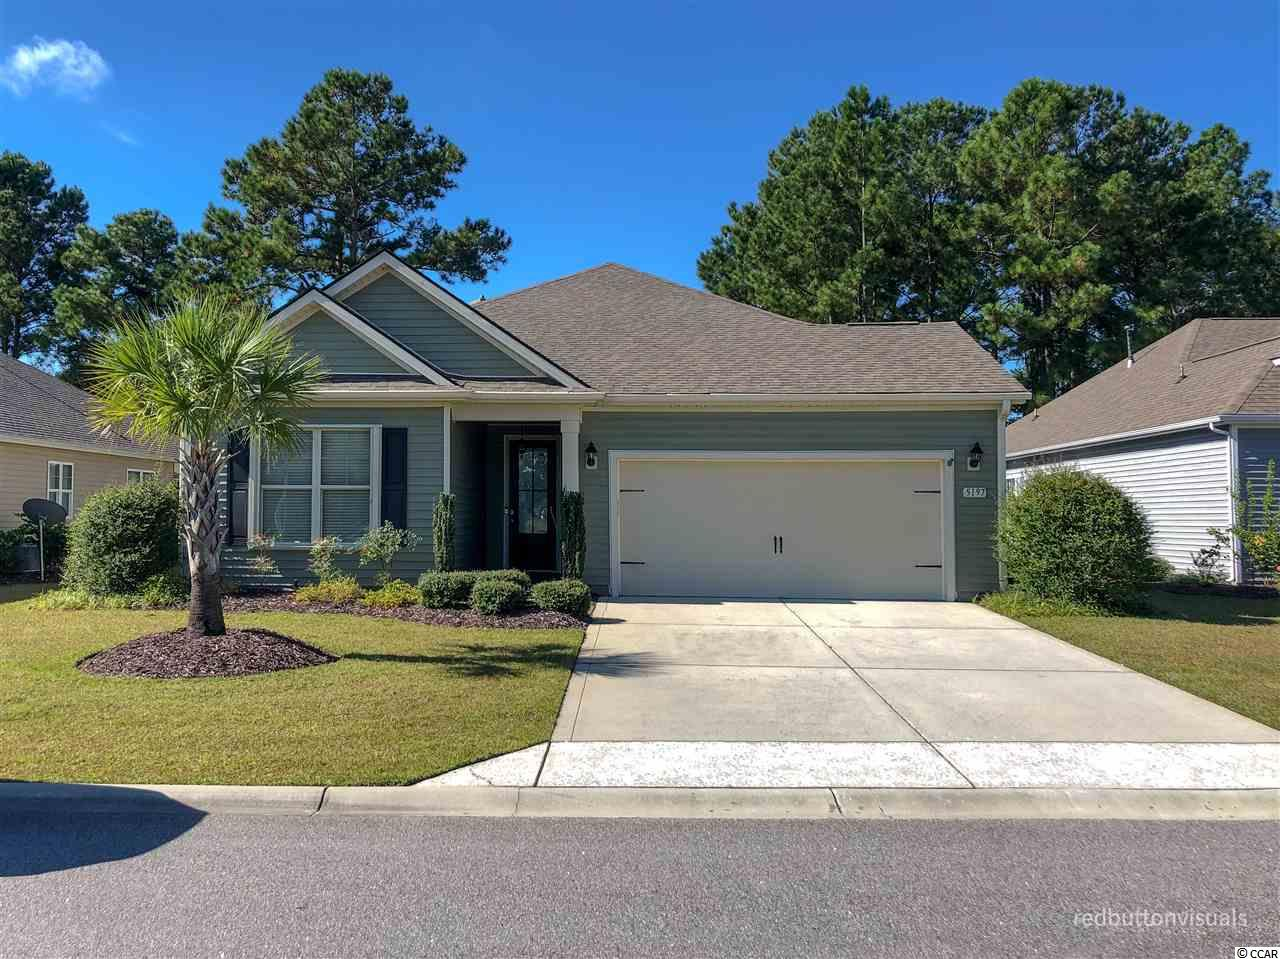 "Located in the gated Carillon (55+ section) of Tuscany, this 3 bedroom 2 bathroom home shows like a model. This spacious, open floor plan boast a huge kitchen island, stainless steel appliances, a cozy fireplace, den/office, and a LARGE window and screen porch. This home is truly one of a kind as it is fully handicap assessable! Must see to appreciate!  Be stress free with the newly installed hurricane shutters and leaf filtration gutters. Tuscany offers that ""wow"" factor when it comes to amenities, the community has 2 Resort style pools, large clubhouse with bar & seating areas, 2,000 sq. ft. fitness center, 24 seat movie theater, game room, 10 miles of walking trails, 60 acres of conservation, 40 acres of fishing lakes, and 2 tennis courts. Conveniently located just minutes from the Tanger Outlets, Hwy 31, Coastal Grand Mall, Market Common, and the beach! Don't miss out and schedule your showing today!"